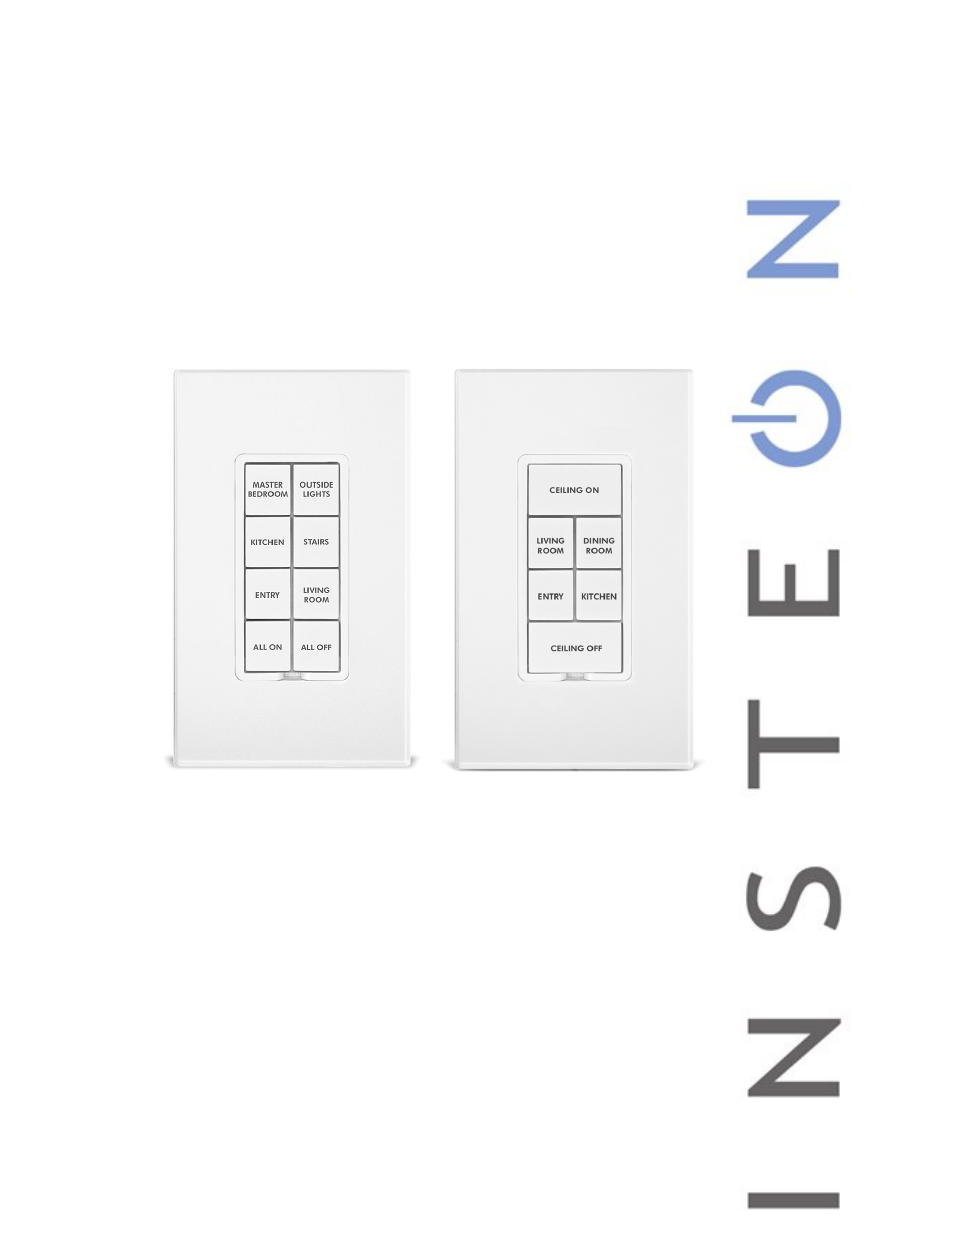 Insteon Keypad Wiring Diagram Trusted Schematics 3 Way Switch Keypadlinc Dimmer 8 Button 2486dwh8 Manual User Light